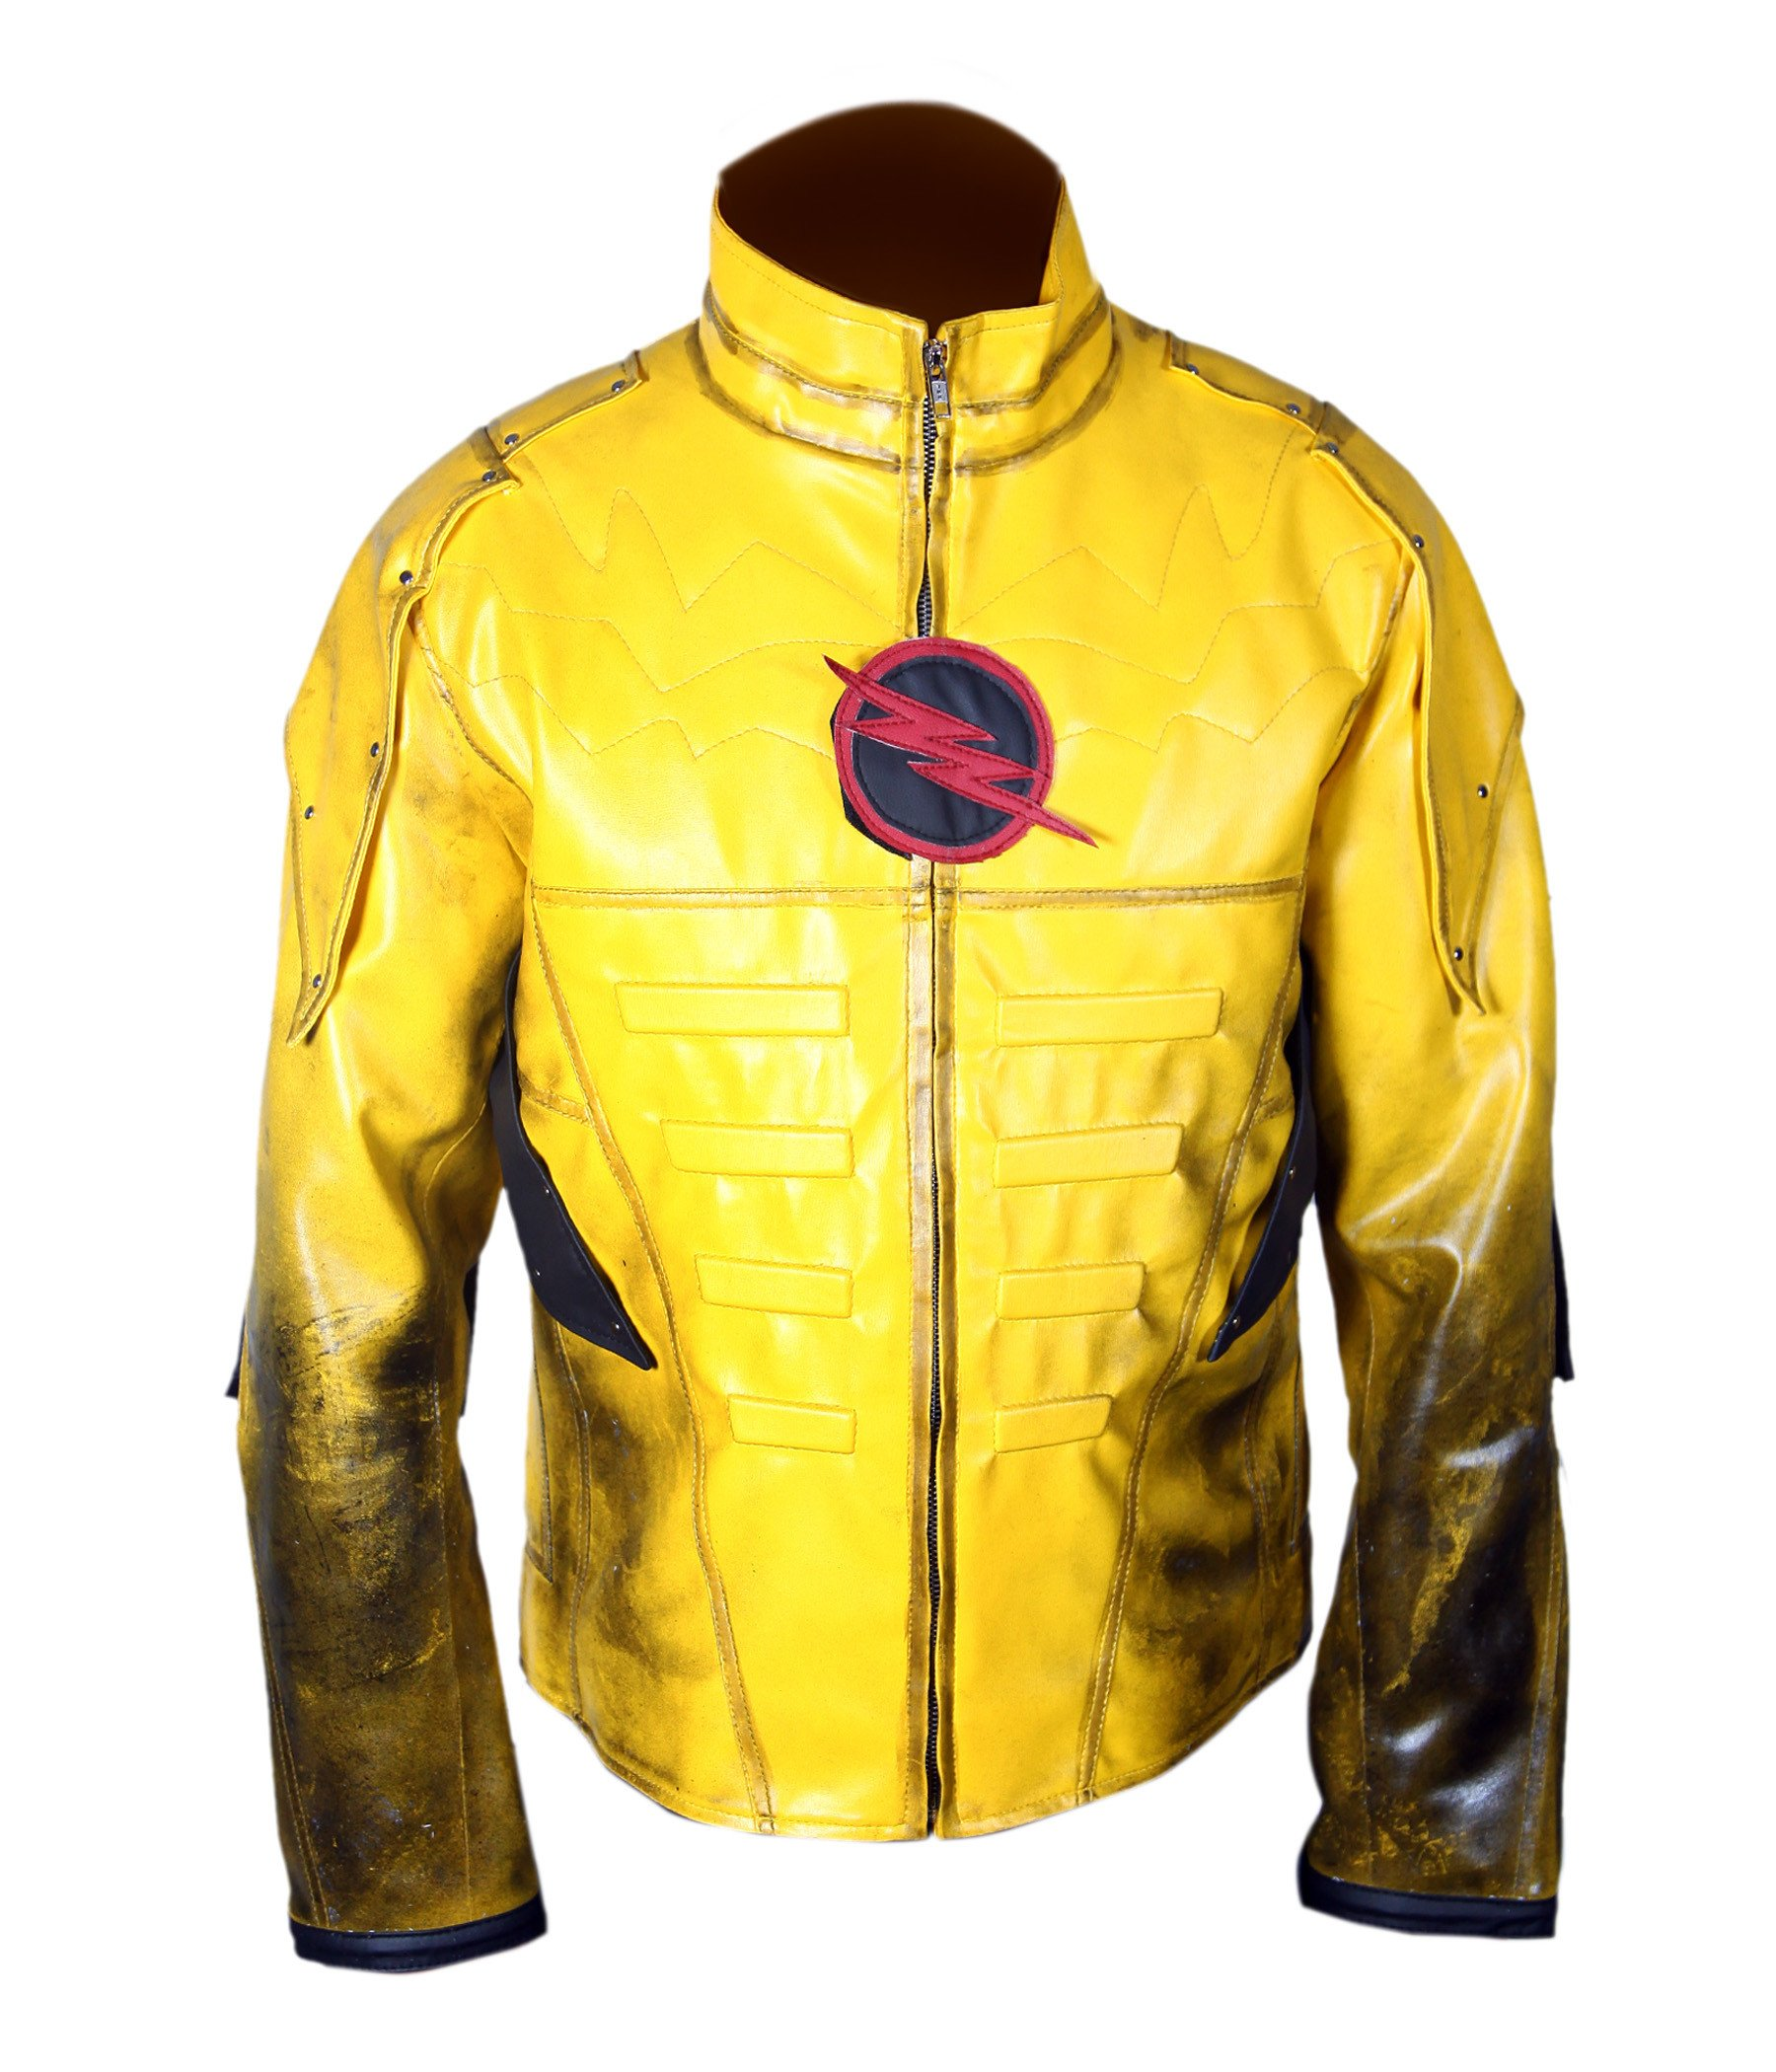 Flesh & Hide F&H Boy's Reverse Flash Eobard Thawne Zoom Yellow Lightning Jacket L Yellow by Flesh & Hide